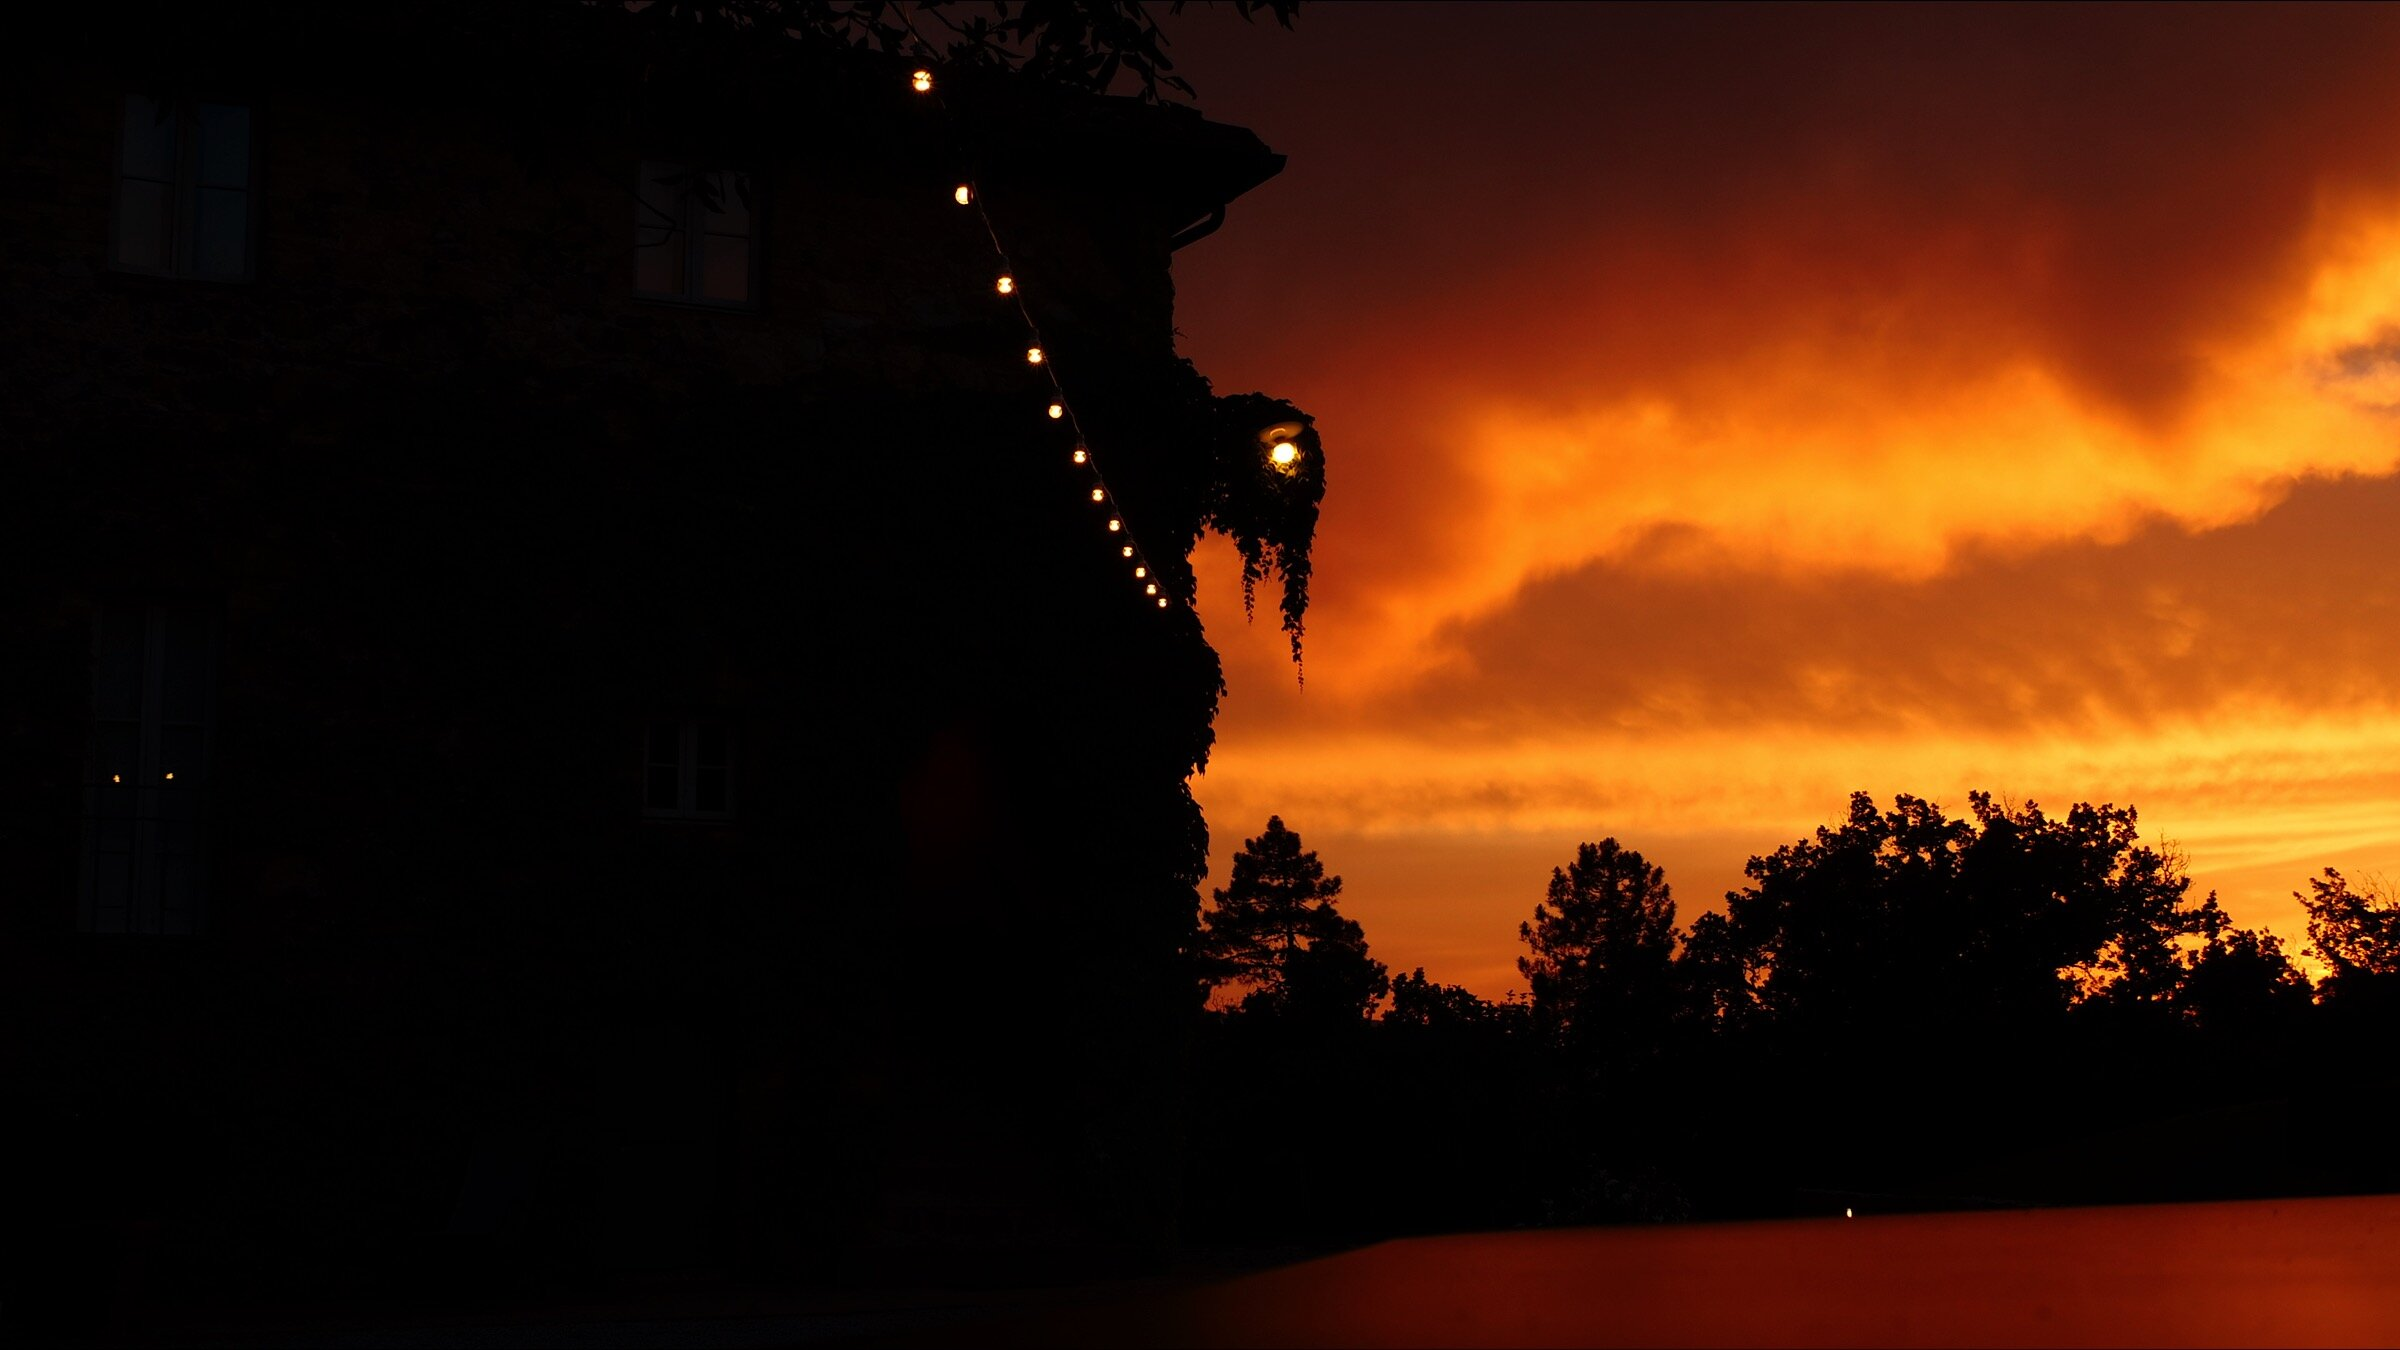 A rich, golden sunset falls behind Villa Podernovo, which is silhouetted against the sky. .